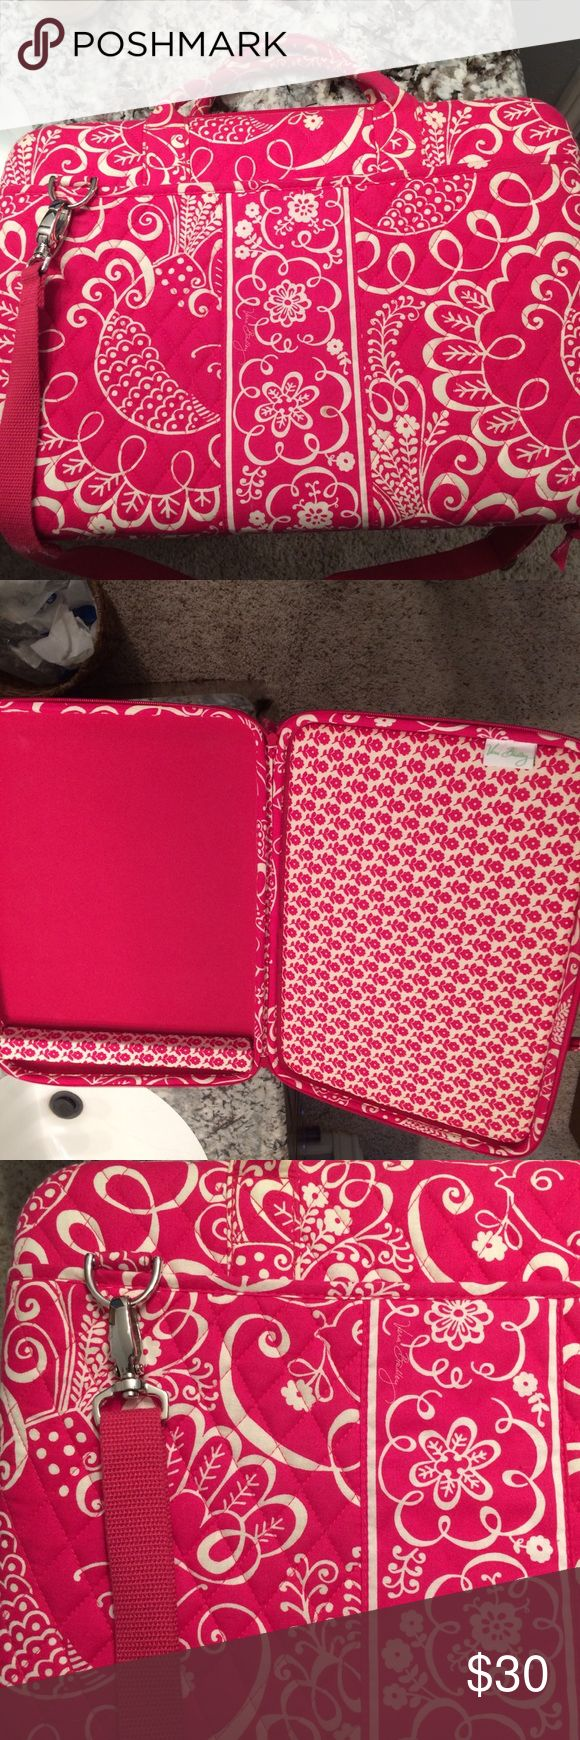 Vera Bradley Laptop Case Vera Bradley Laptop carrying case! The handles aren't as pure white as the rest of the bag. Otherwise, is in perfect condition! Vera Bradley Bags Laptop Bags